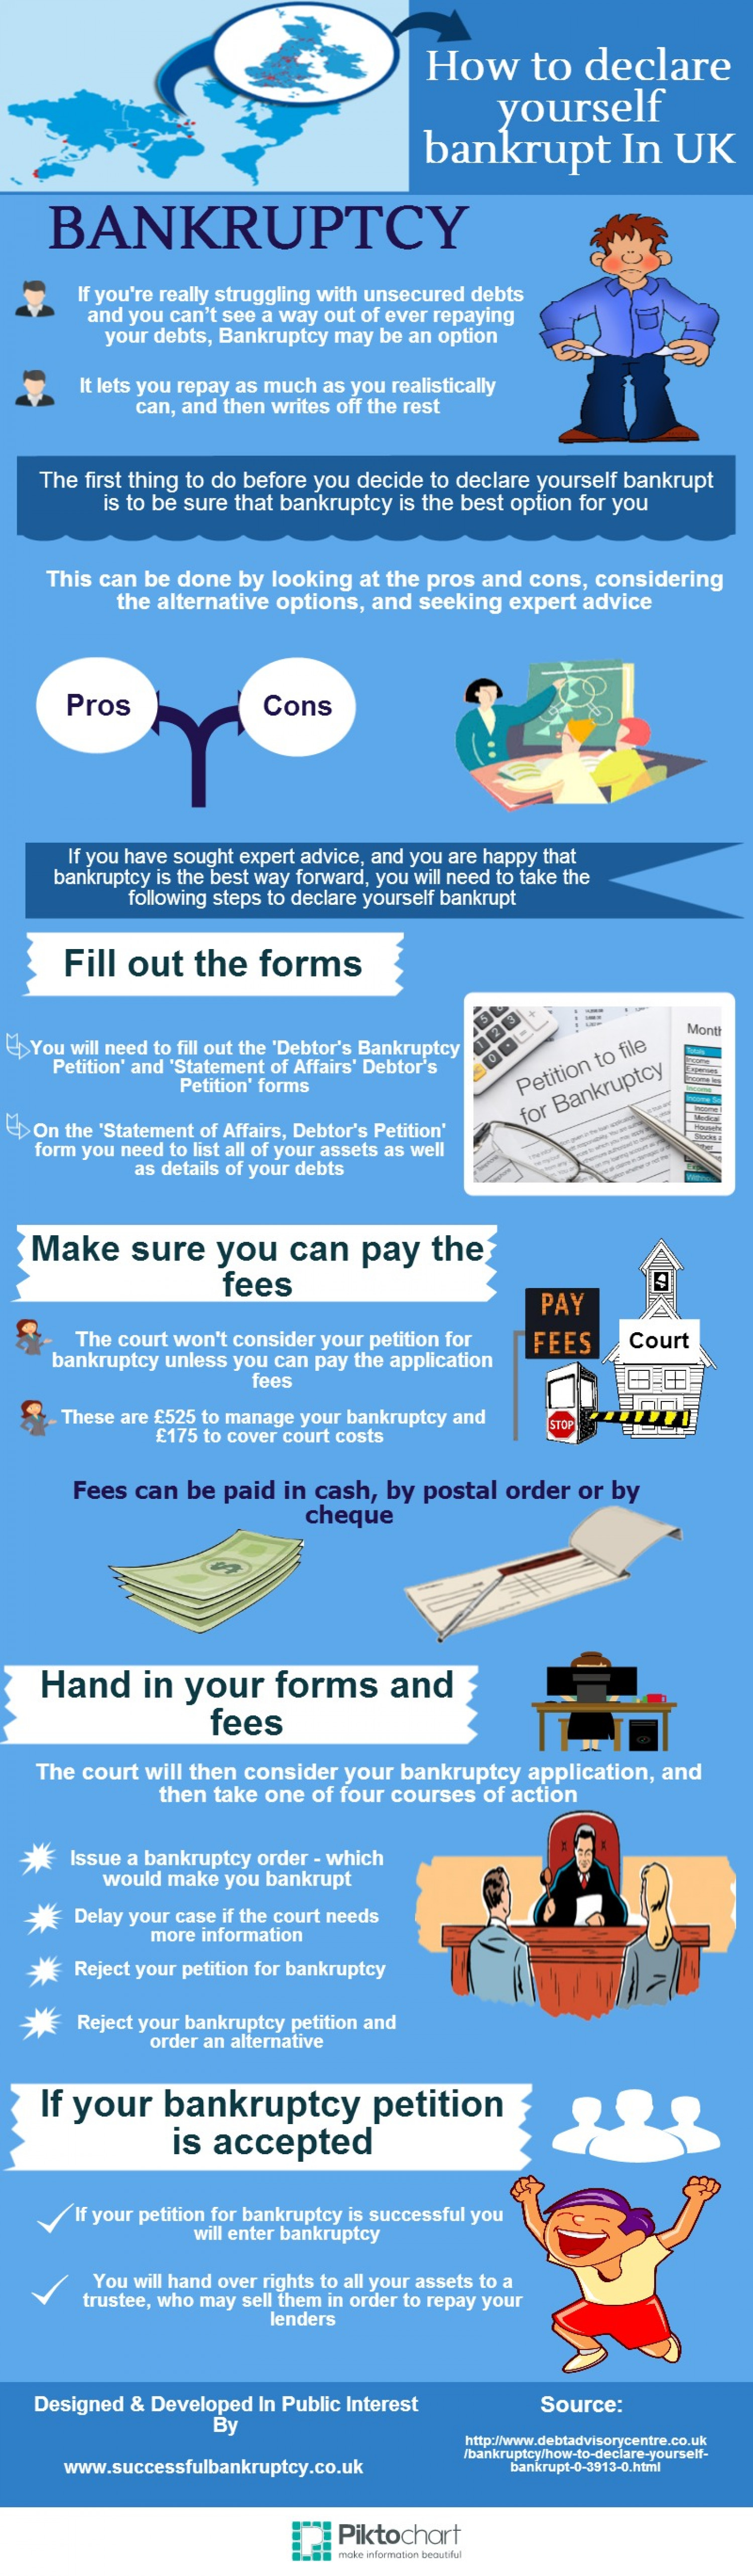 How to Declare Yourself Bankrupt in UK Infographic